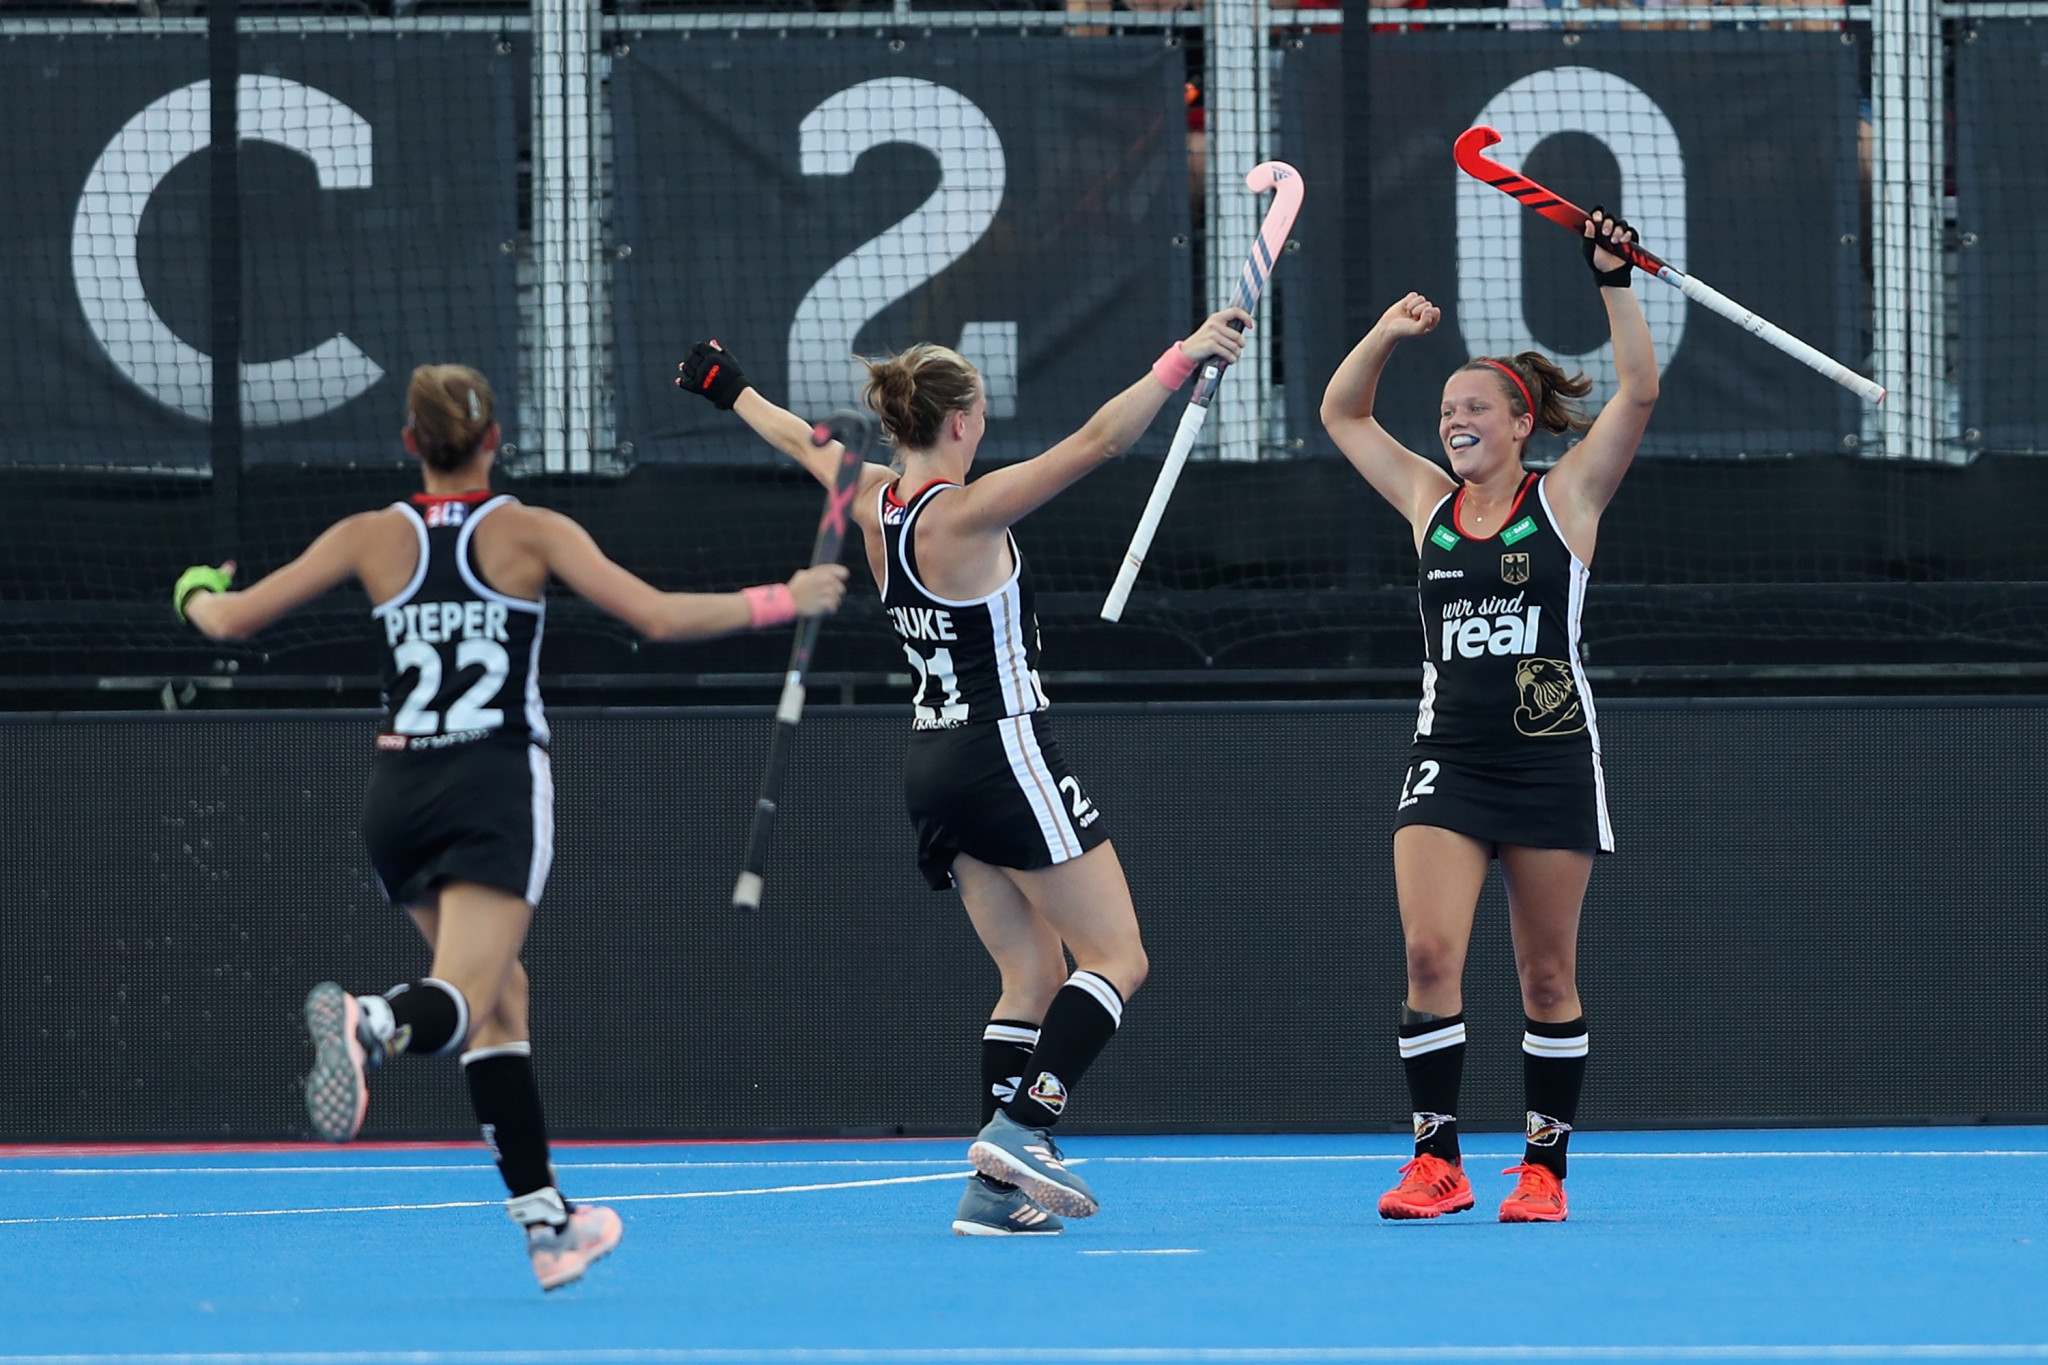 Germany beat Argentina to gain second win at FIH Women's Hockey World Cup